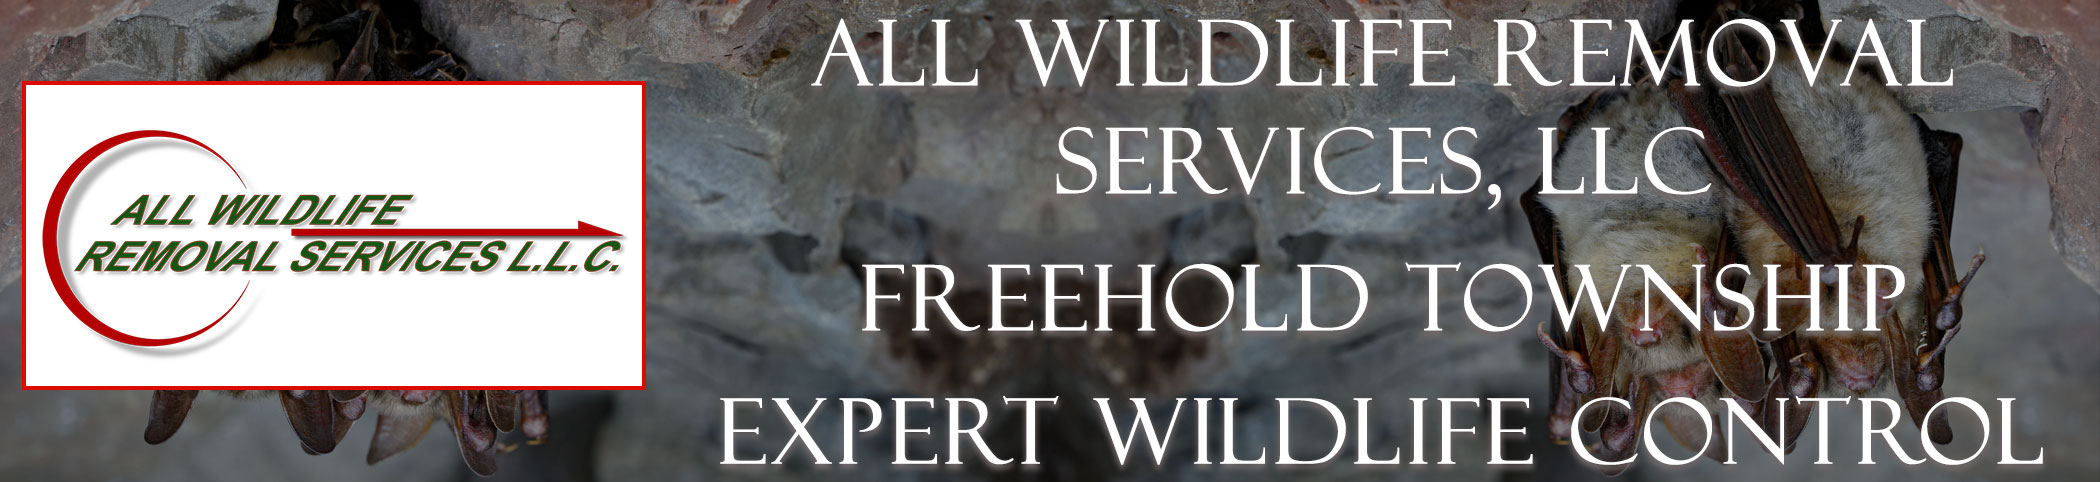 all-wildlife-removal-services-Freehold-Township-new-jersey-header